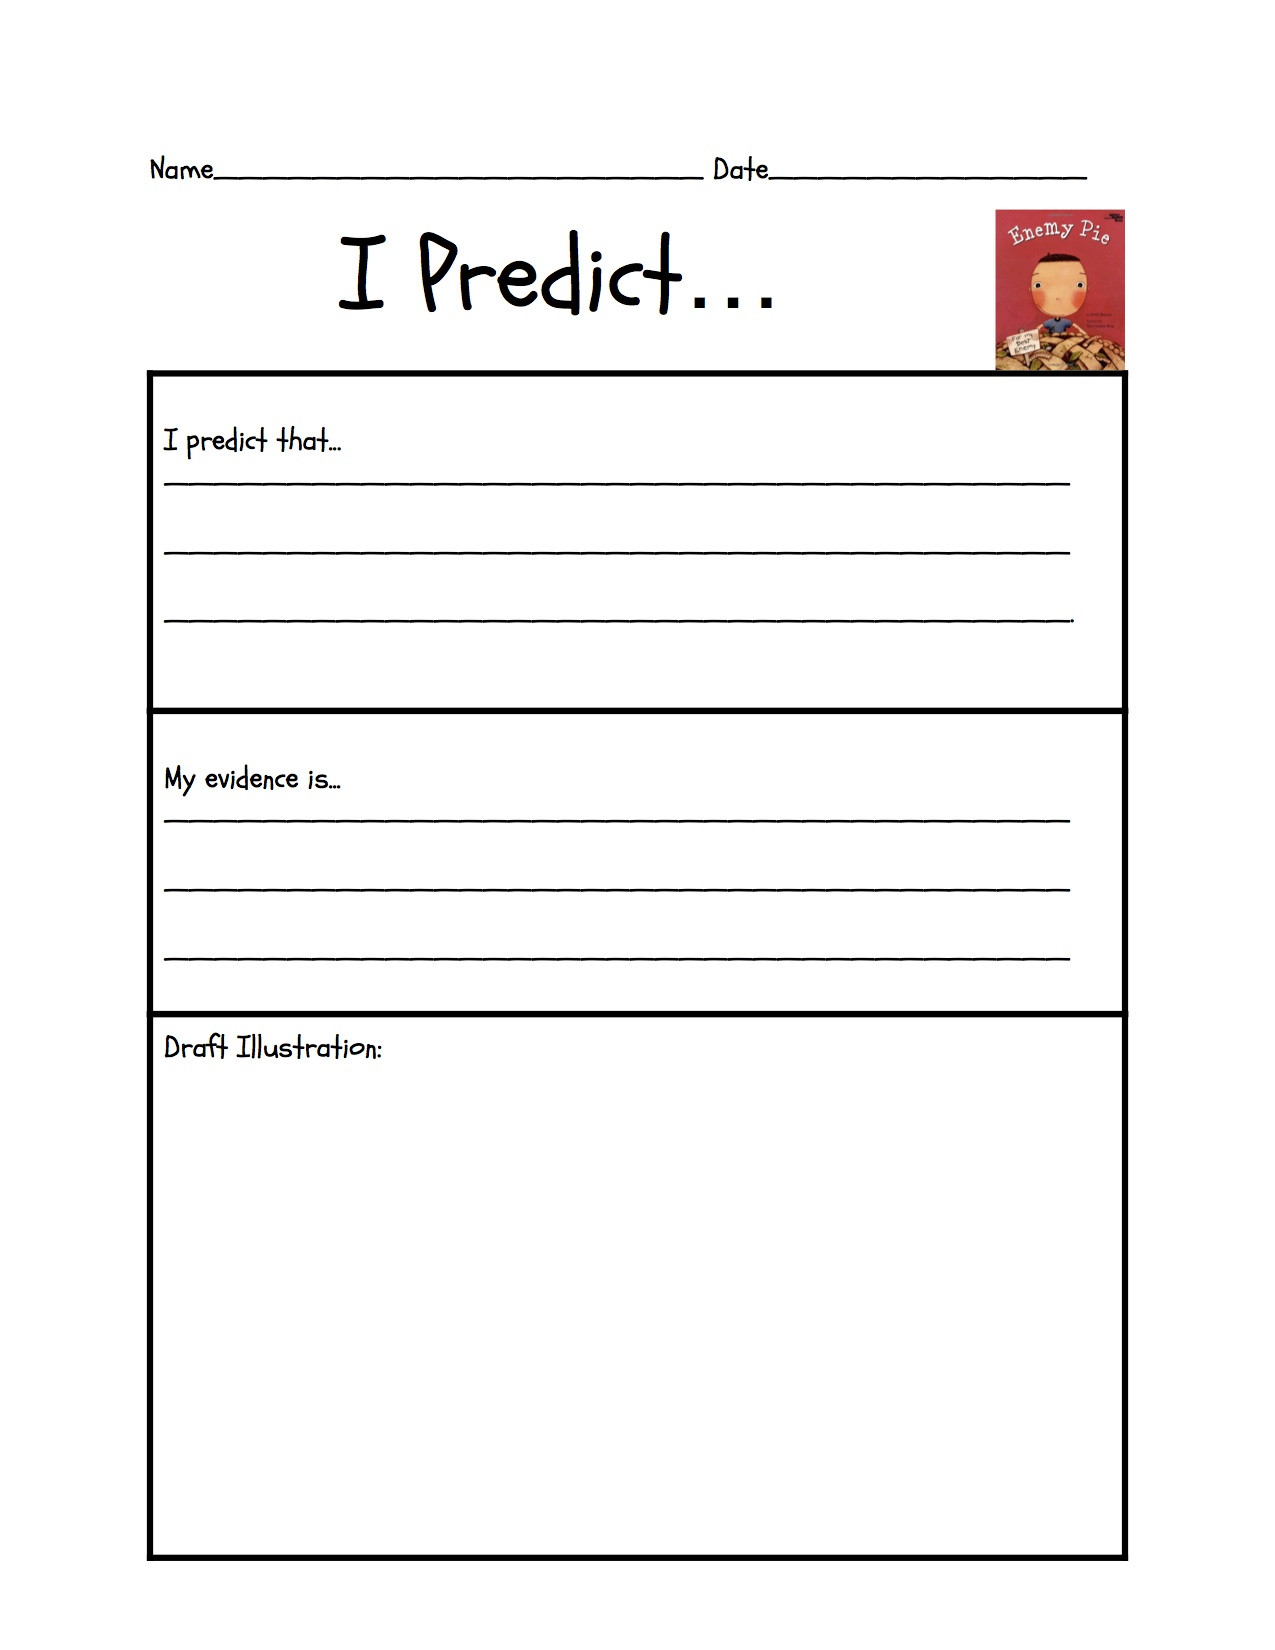 Making Predictions Worksheet 2nd Grade Story Predictions Worksheets